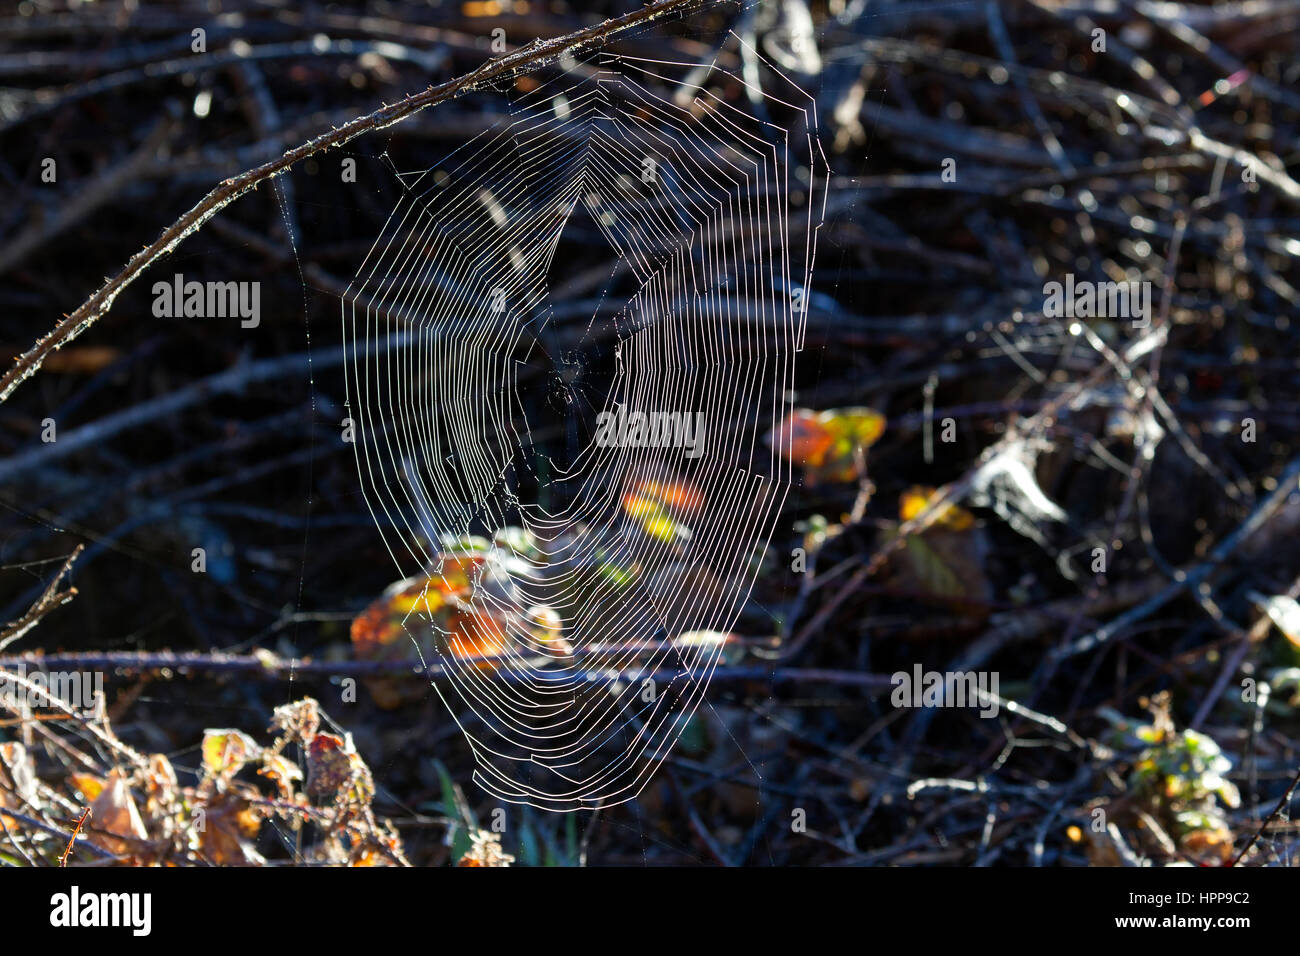 Spider Web - Stock Image